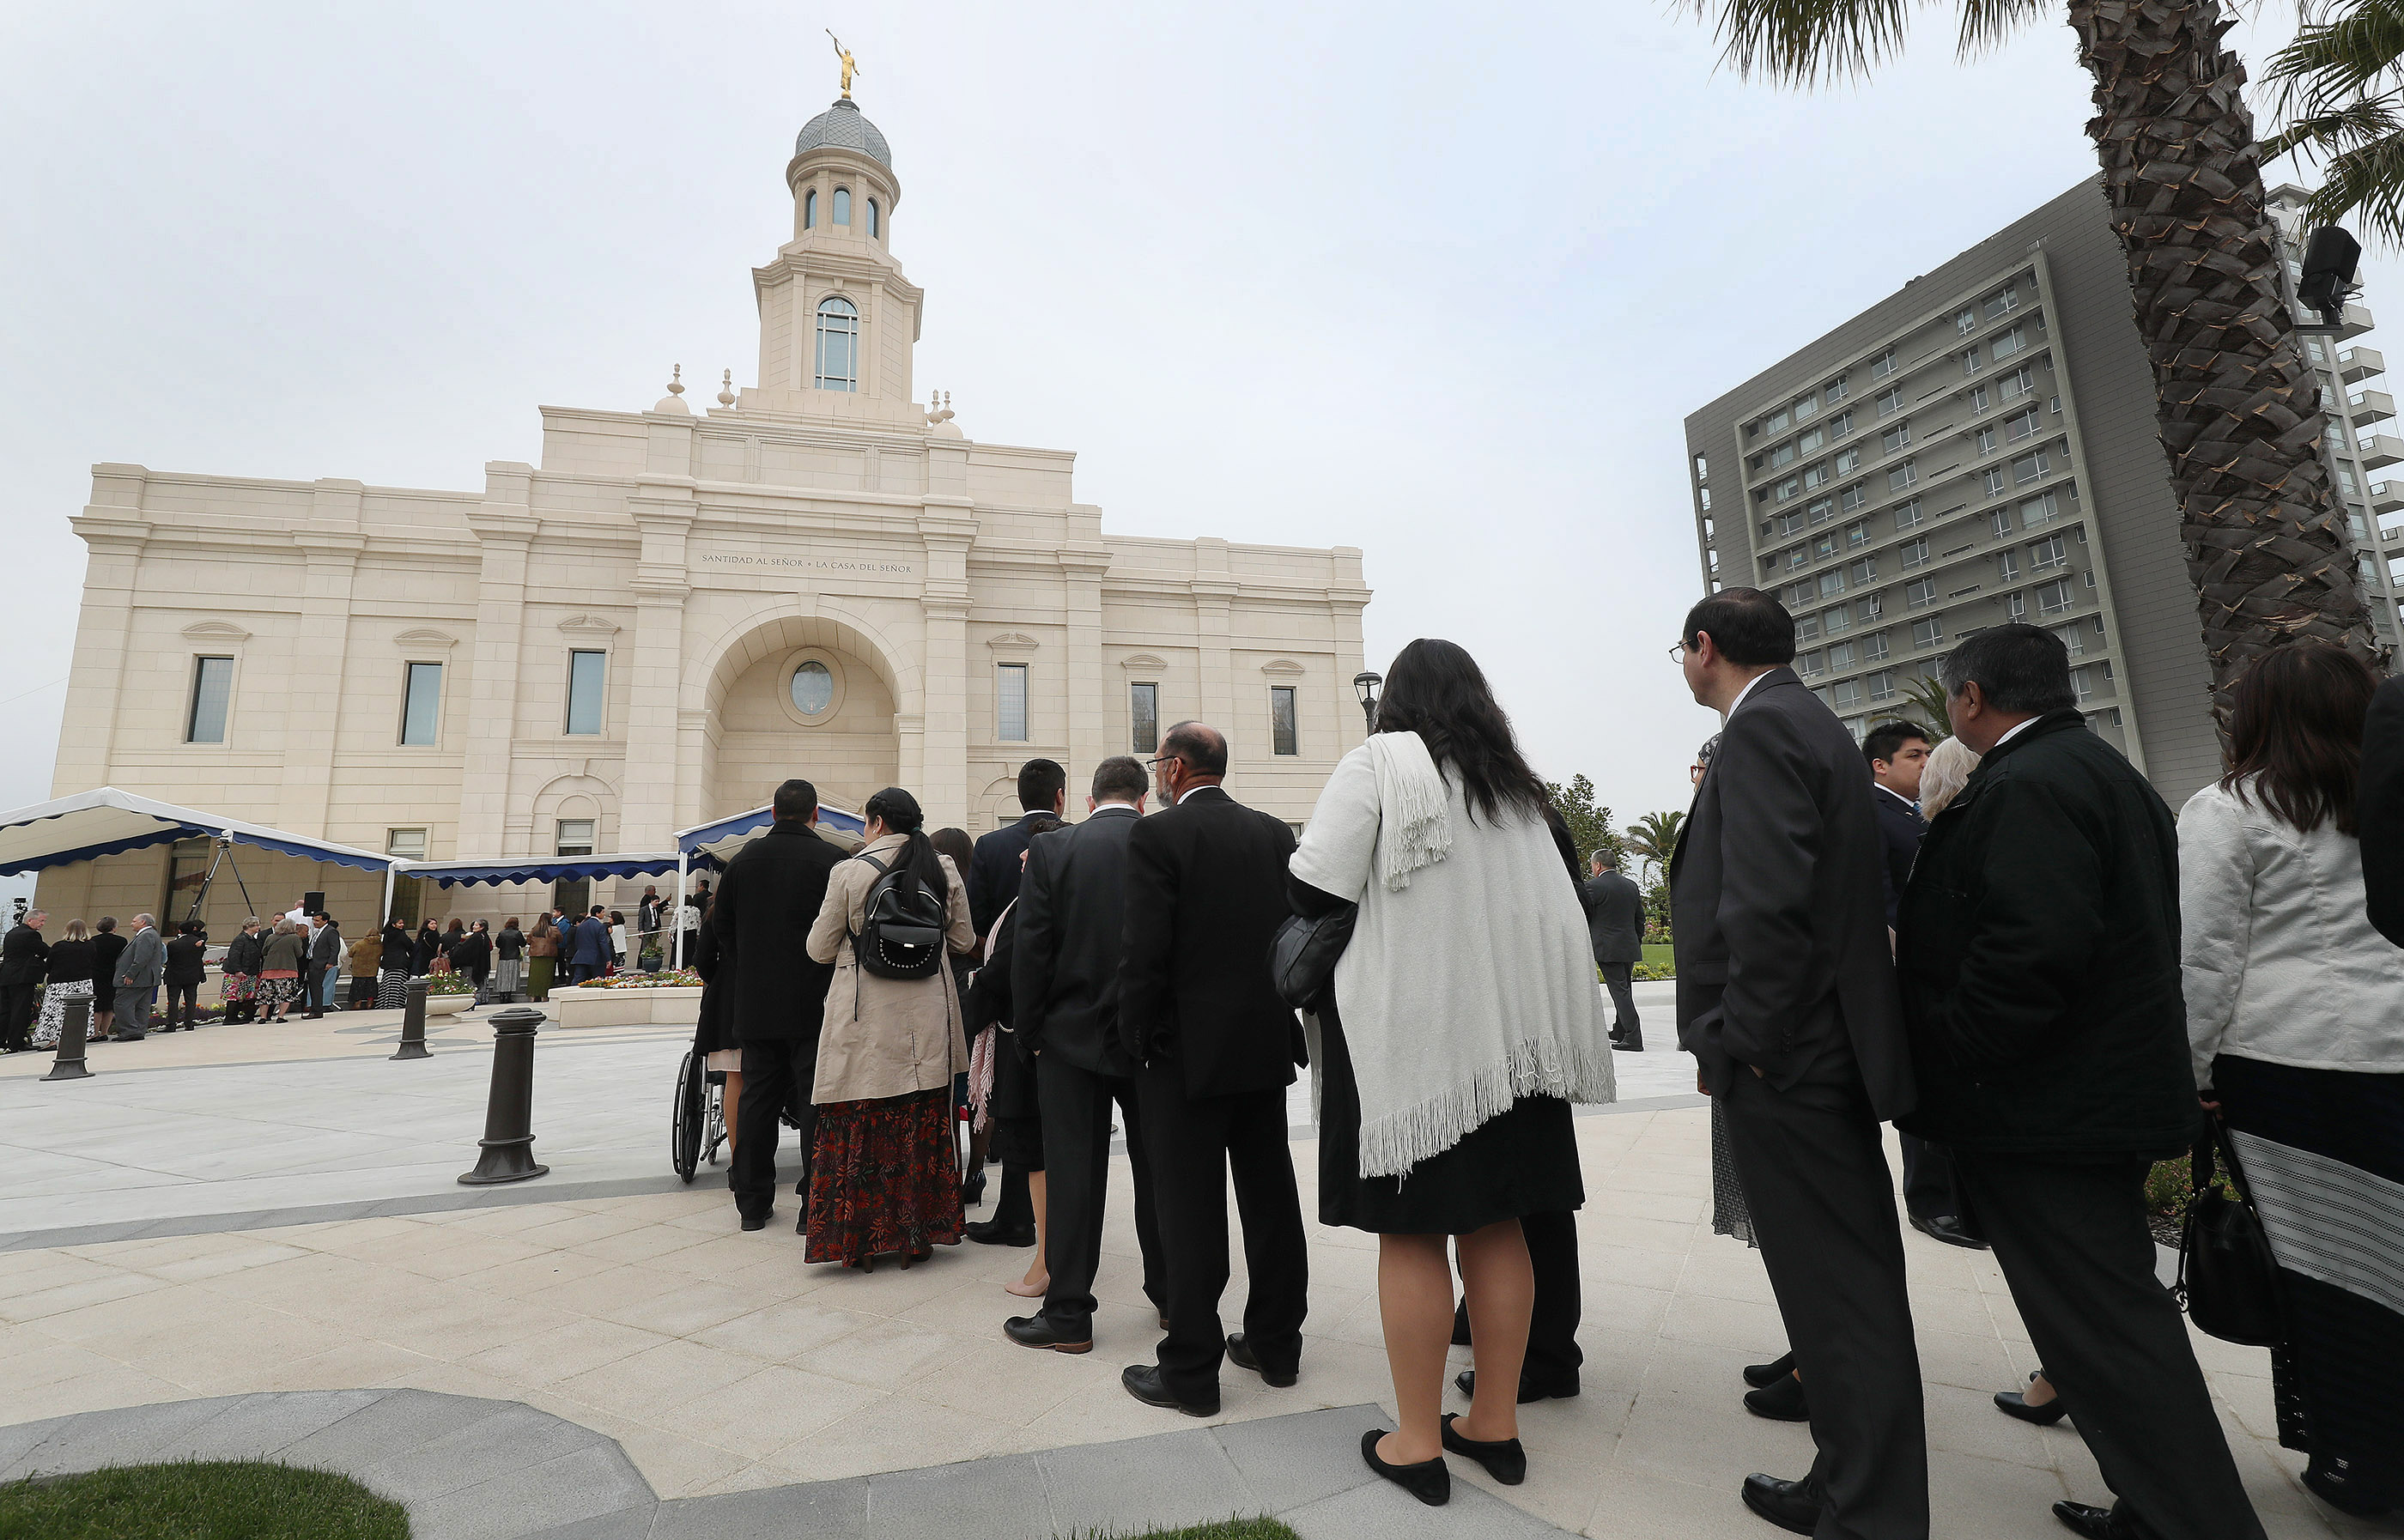 Attendees line up prior to one of the day's three dedication services of The Church of Jesus Christ of Latter-day Saints' Concepcion Chile Temple in Concepcion, Chile, on Sunday, Oct. 28, 2018.